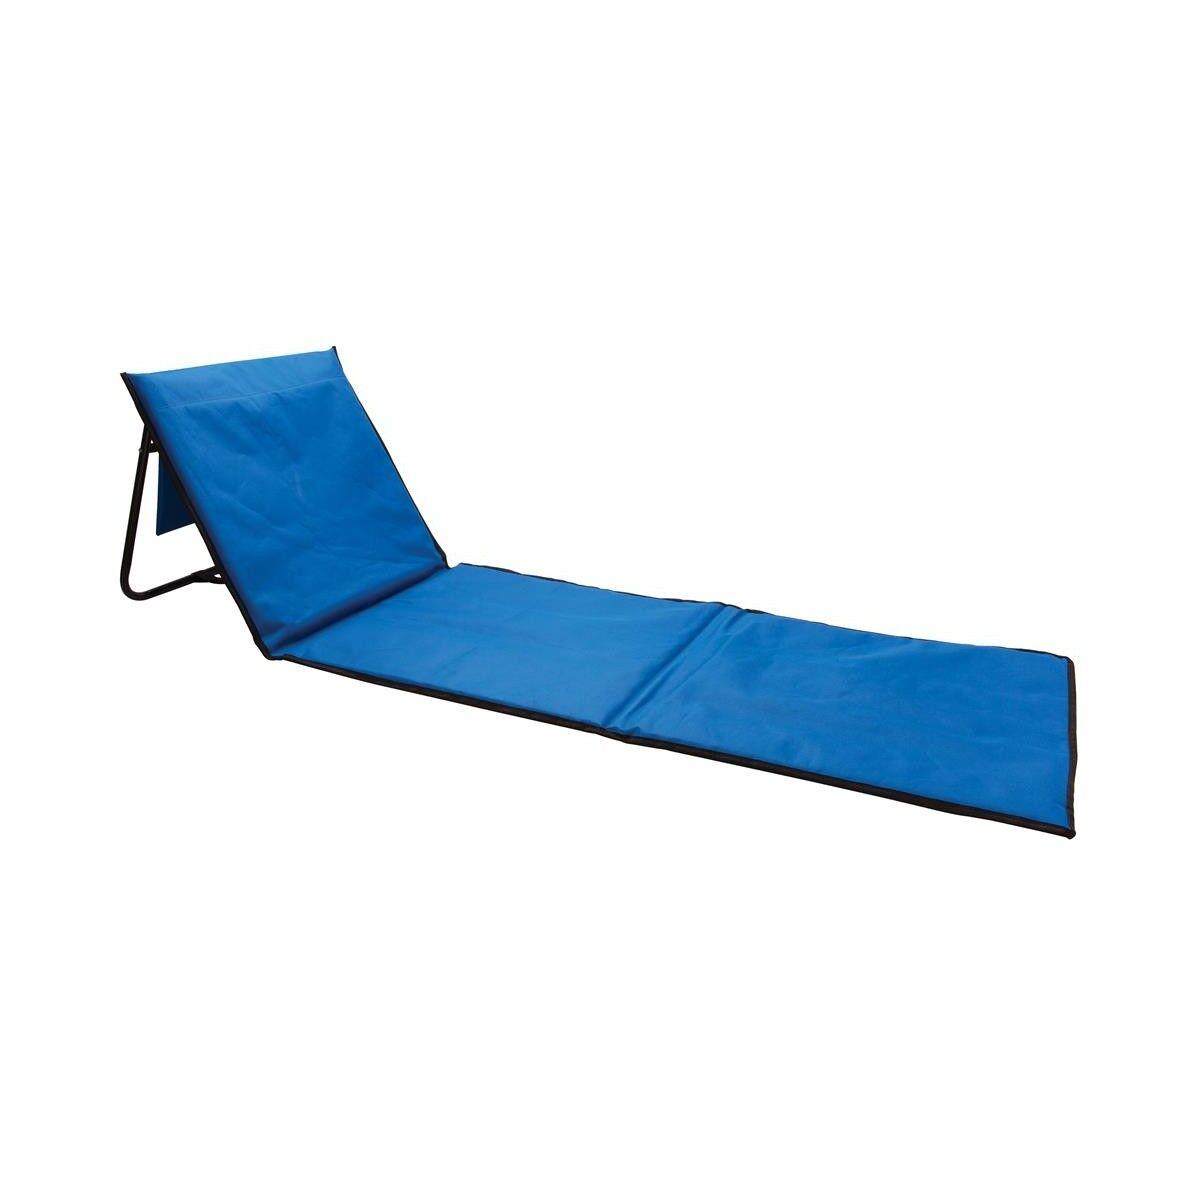 Foldable Outdoor Lounge Chair